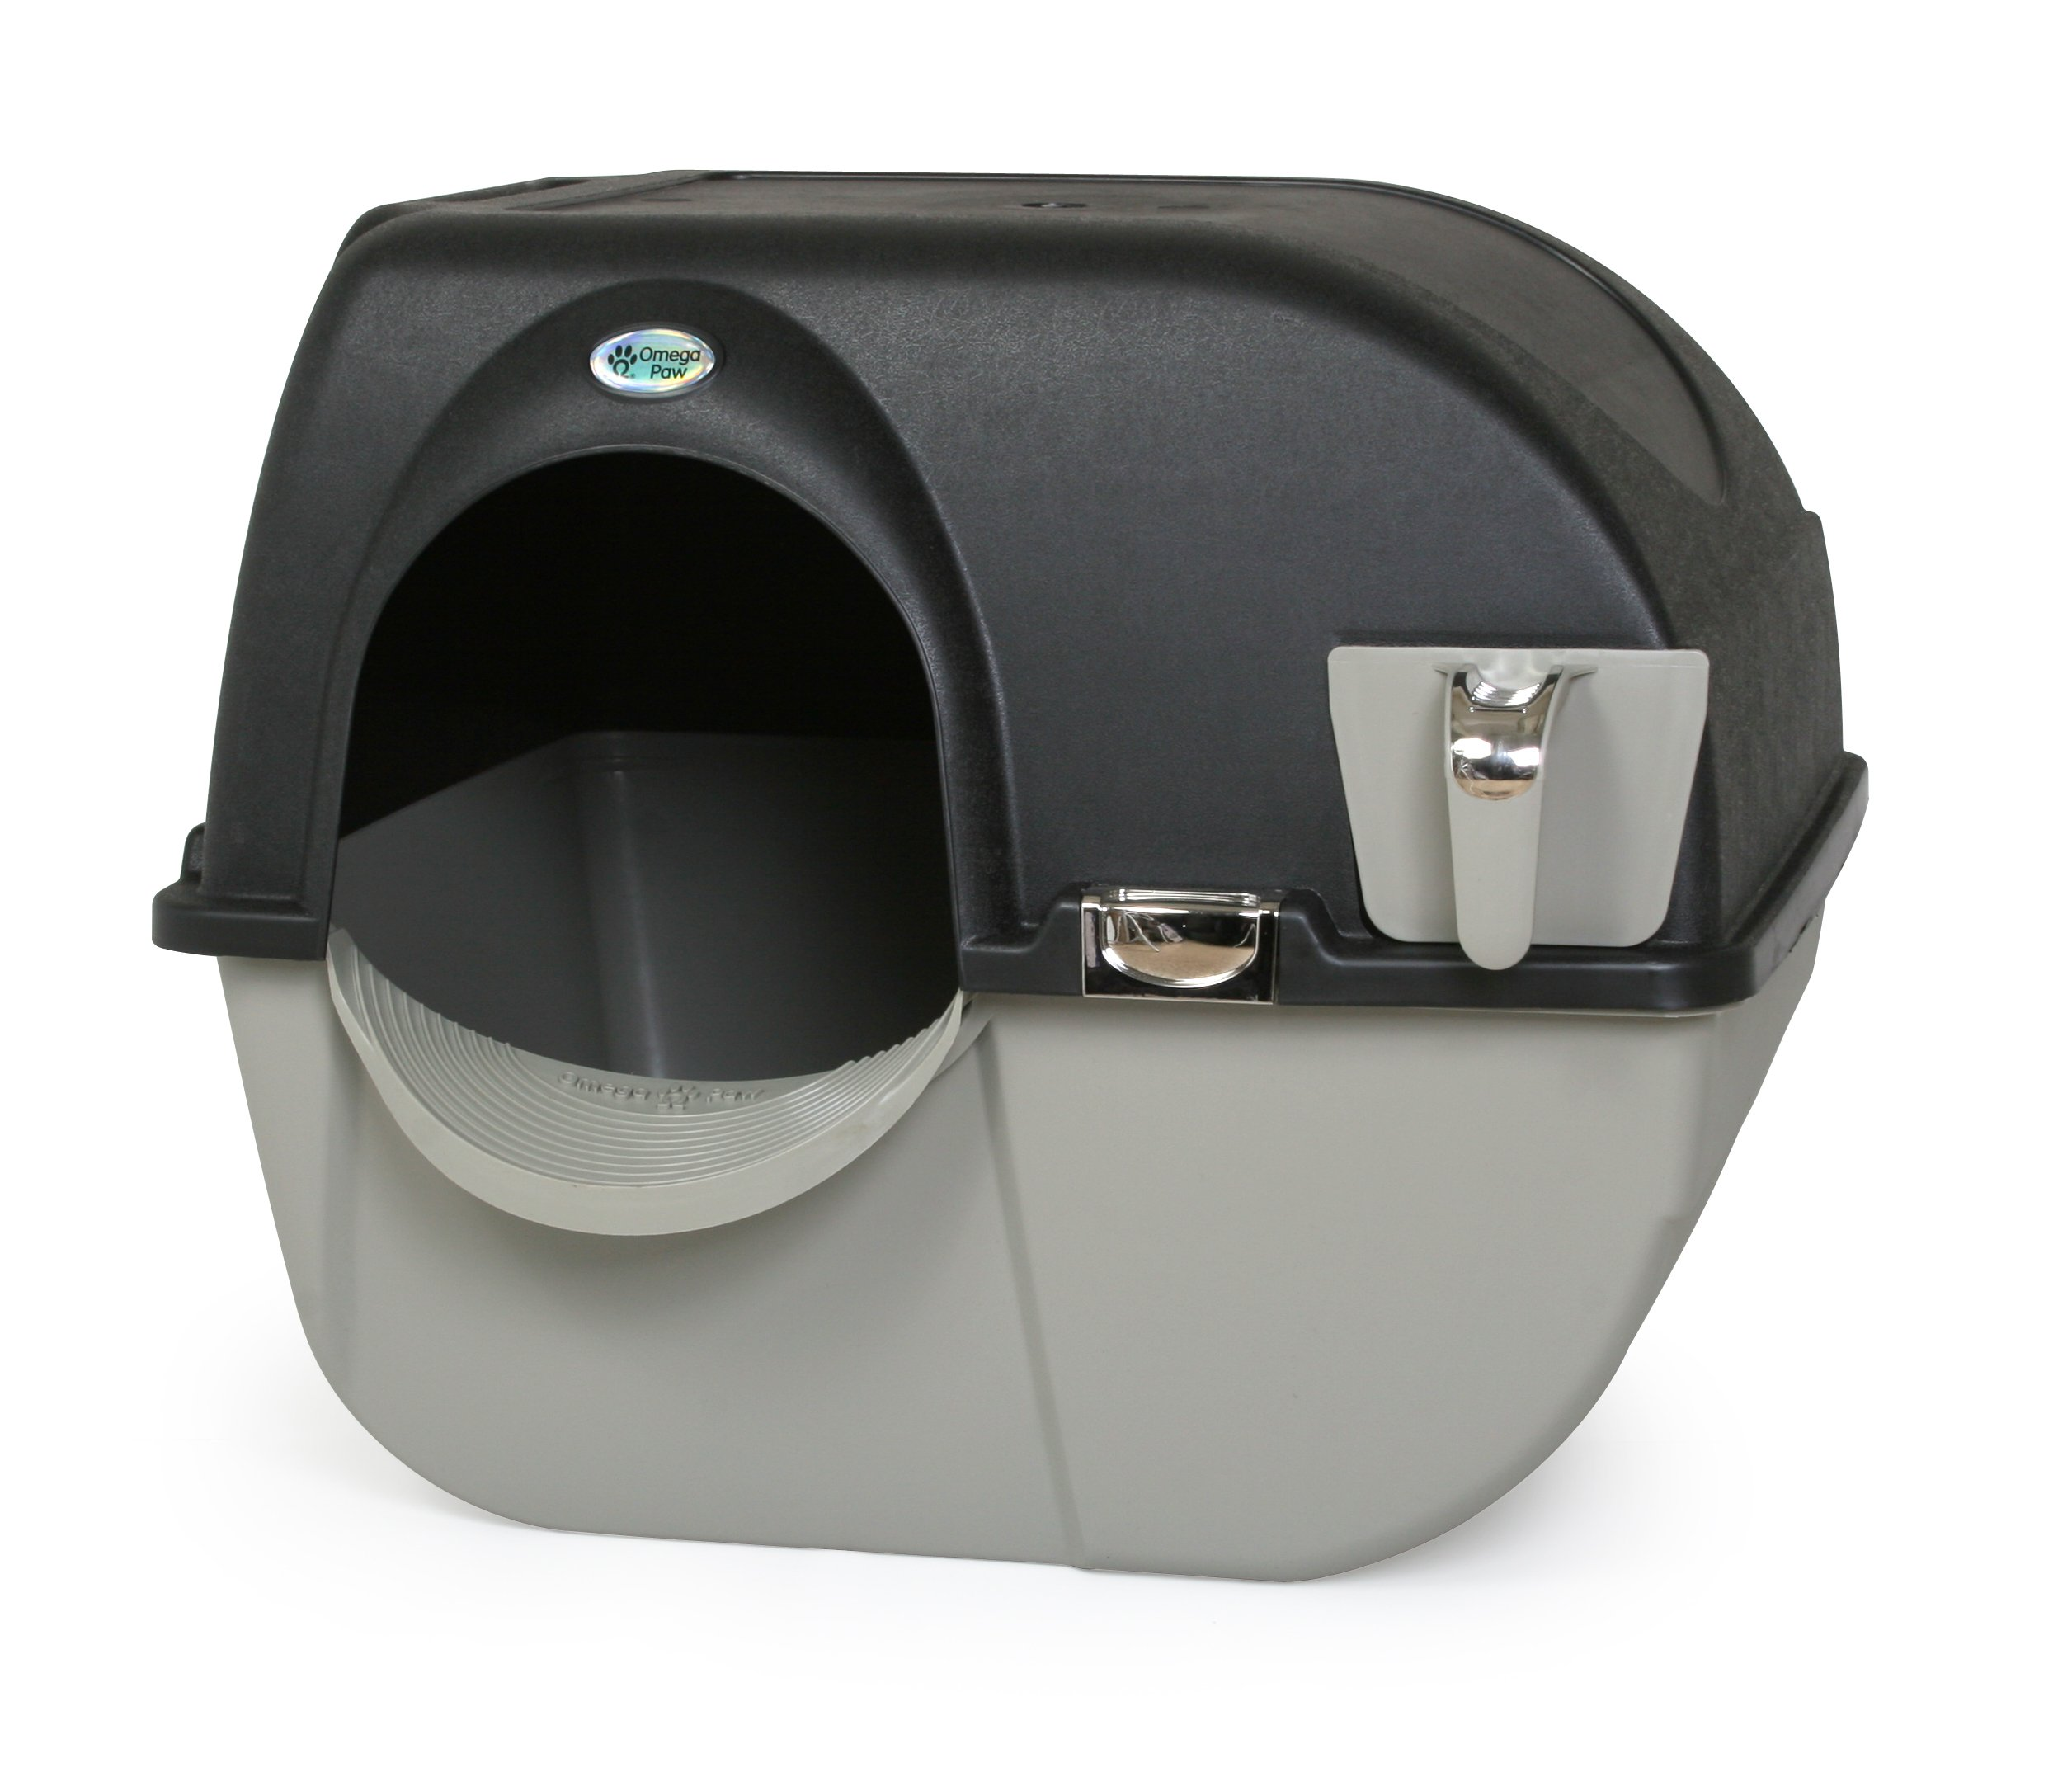 Omega Paw Elite Self Cleaning Roll 'n Clean Litter Box, Midnight Black, Large by Omega Paw